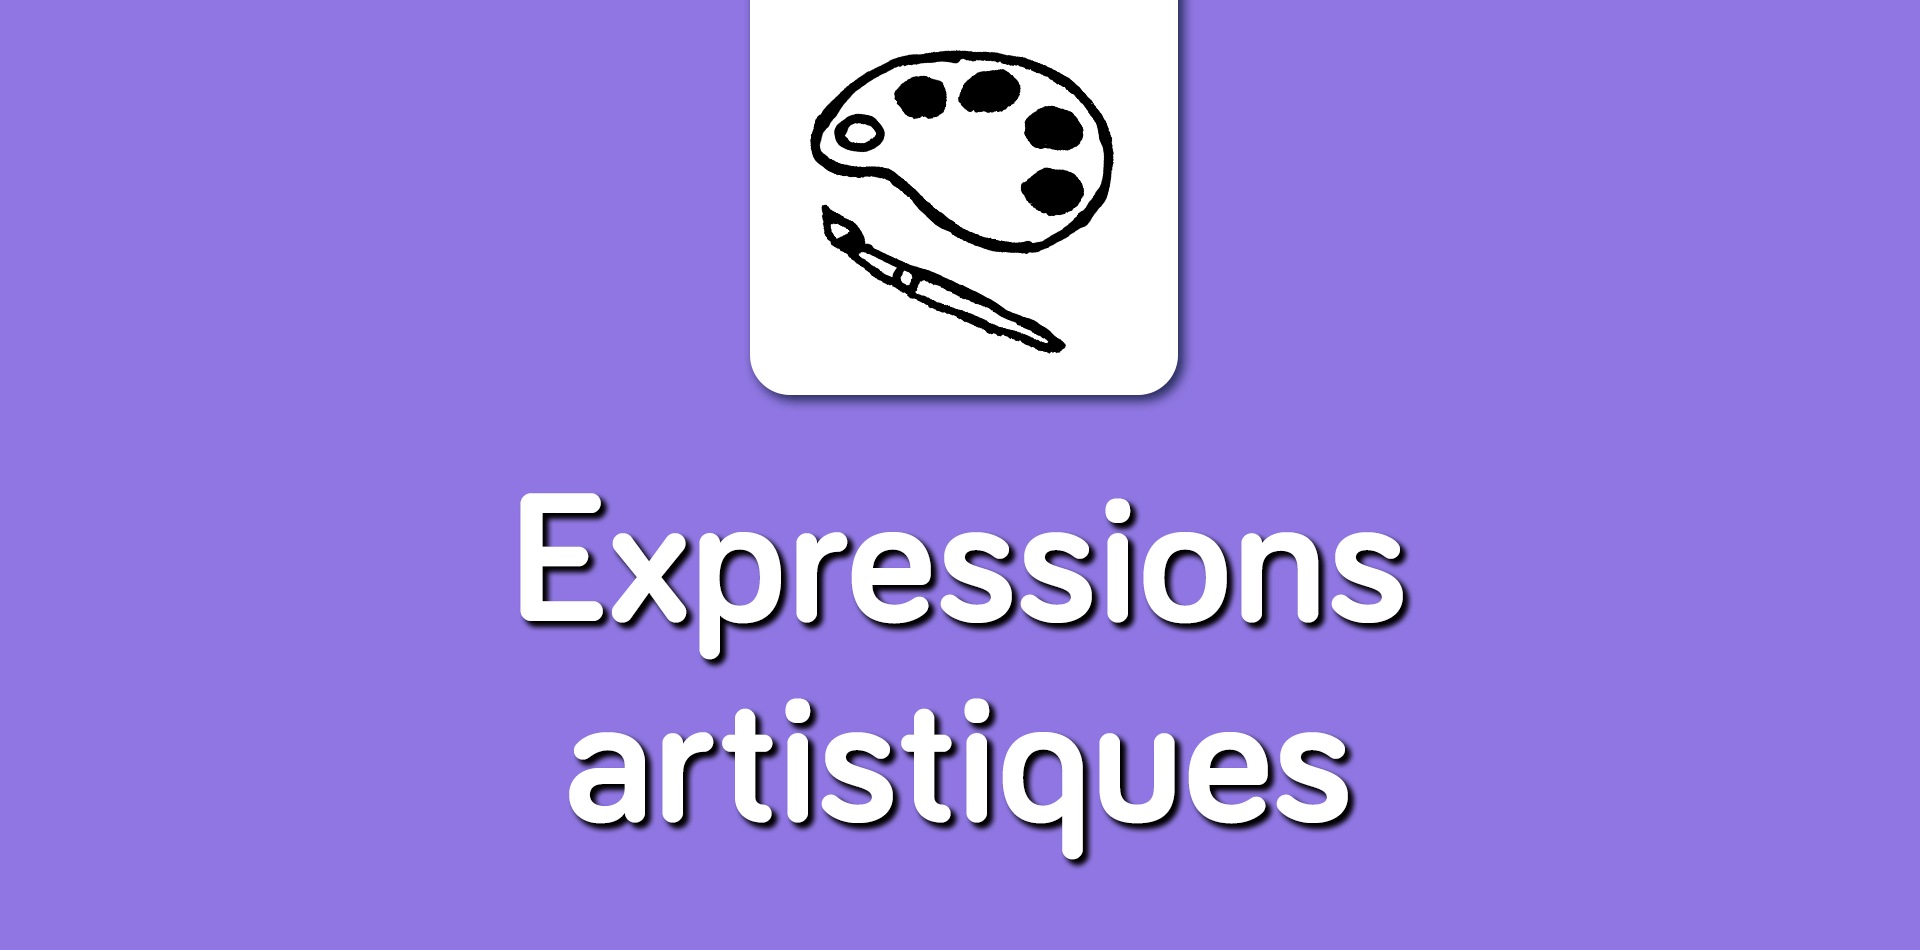 Expessions artistiques mobile